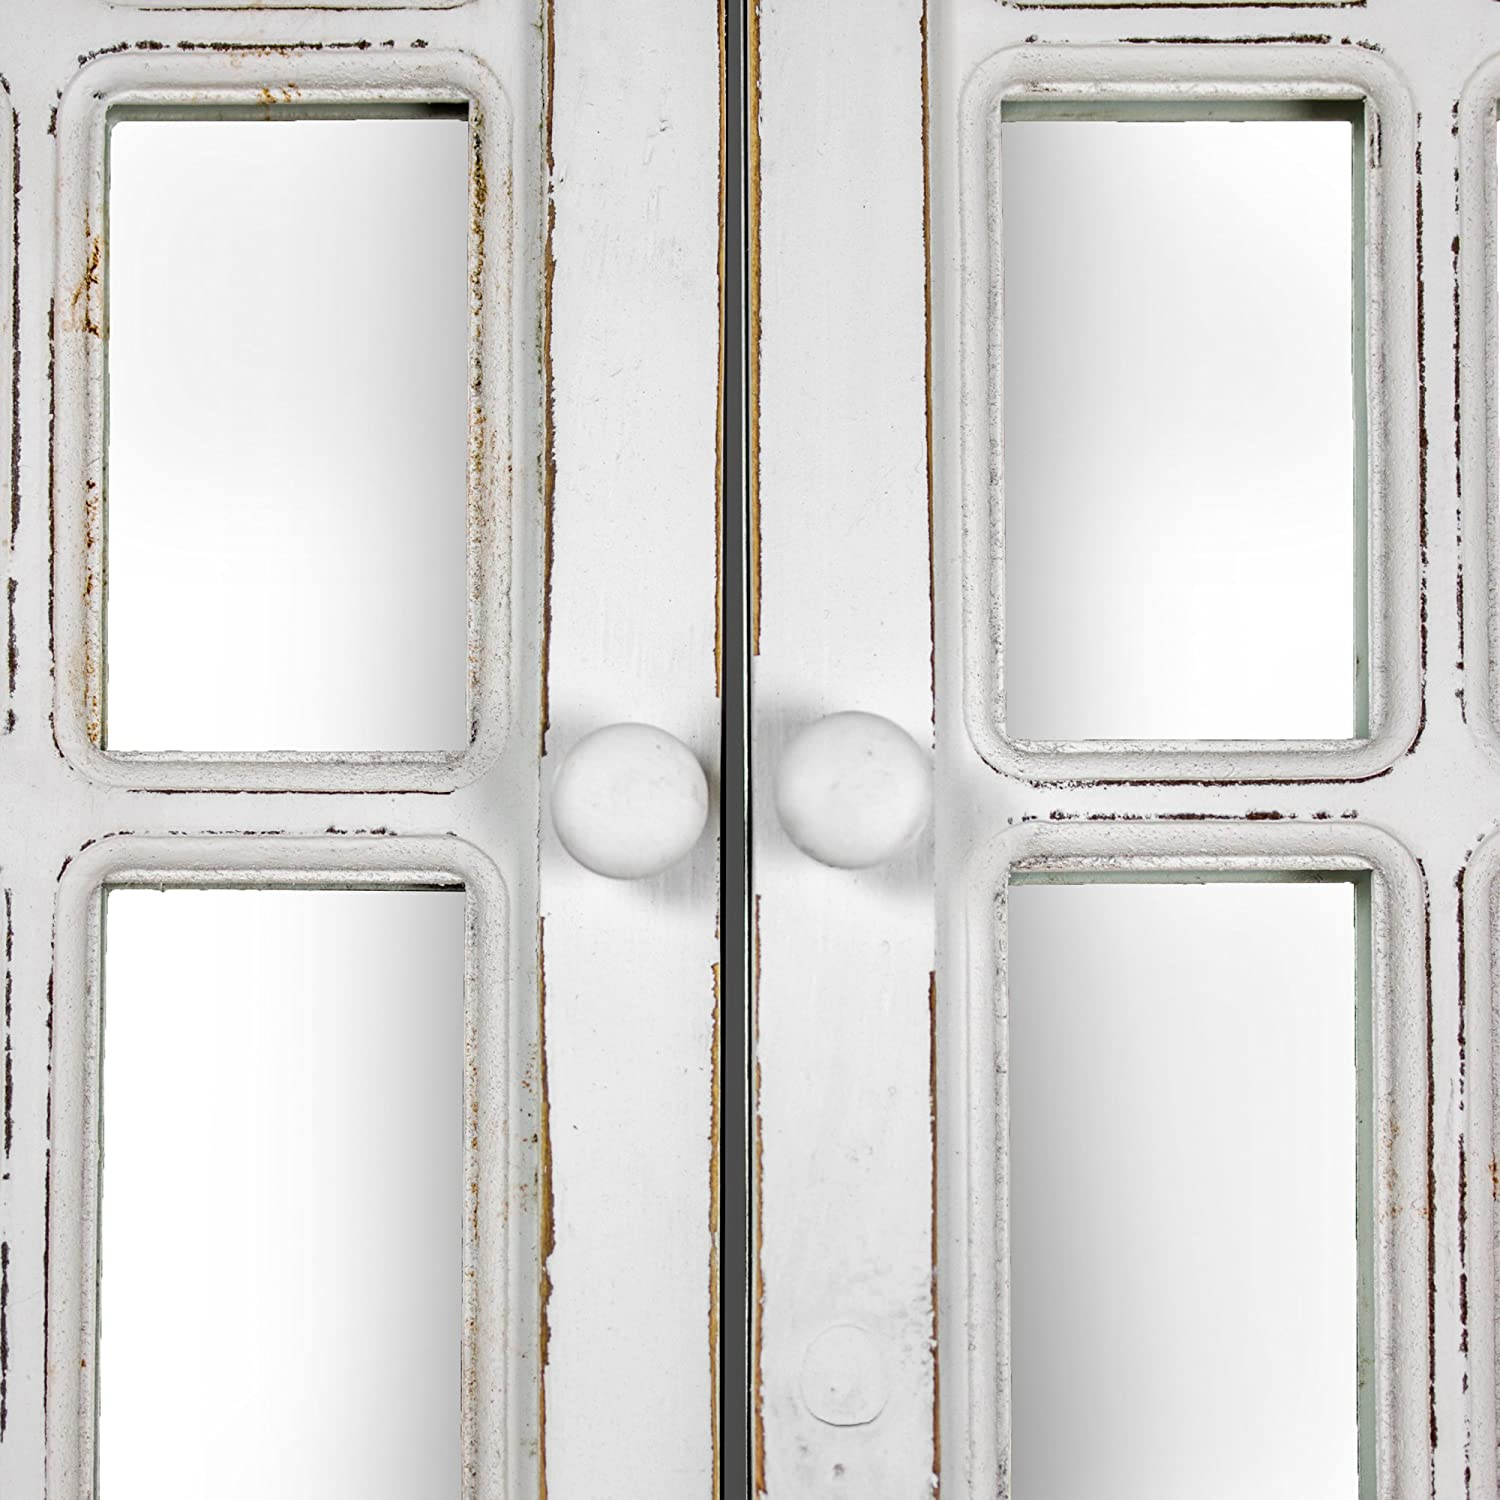 Crystal Art Rustic Farmhouse Wood Window Shutter with Key Hooks Wall Vanity Accent Mirror 22.25 L x 29.5 H White 182147WEB5